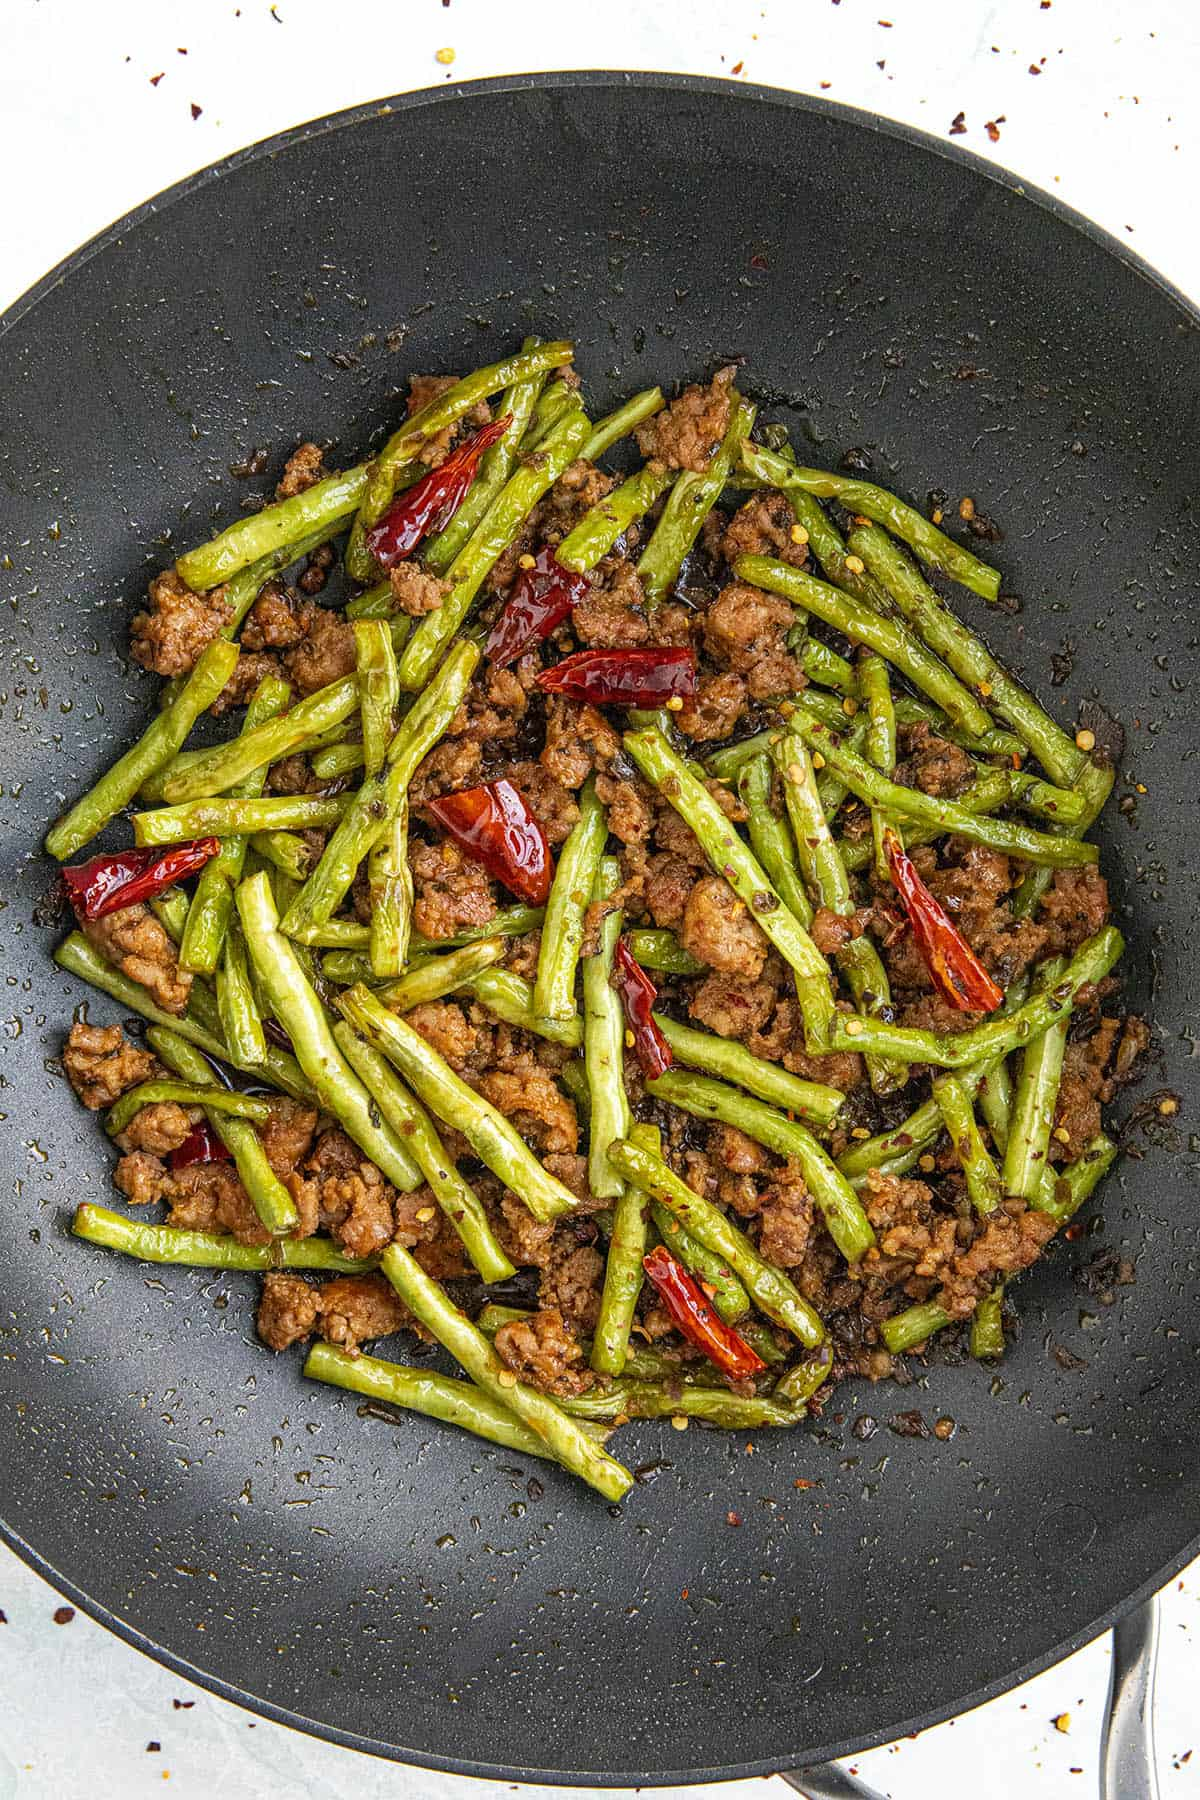 Sichuan Dry Fried Green Beans Recipe in a pan, ready to serve